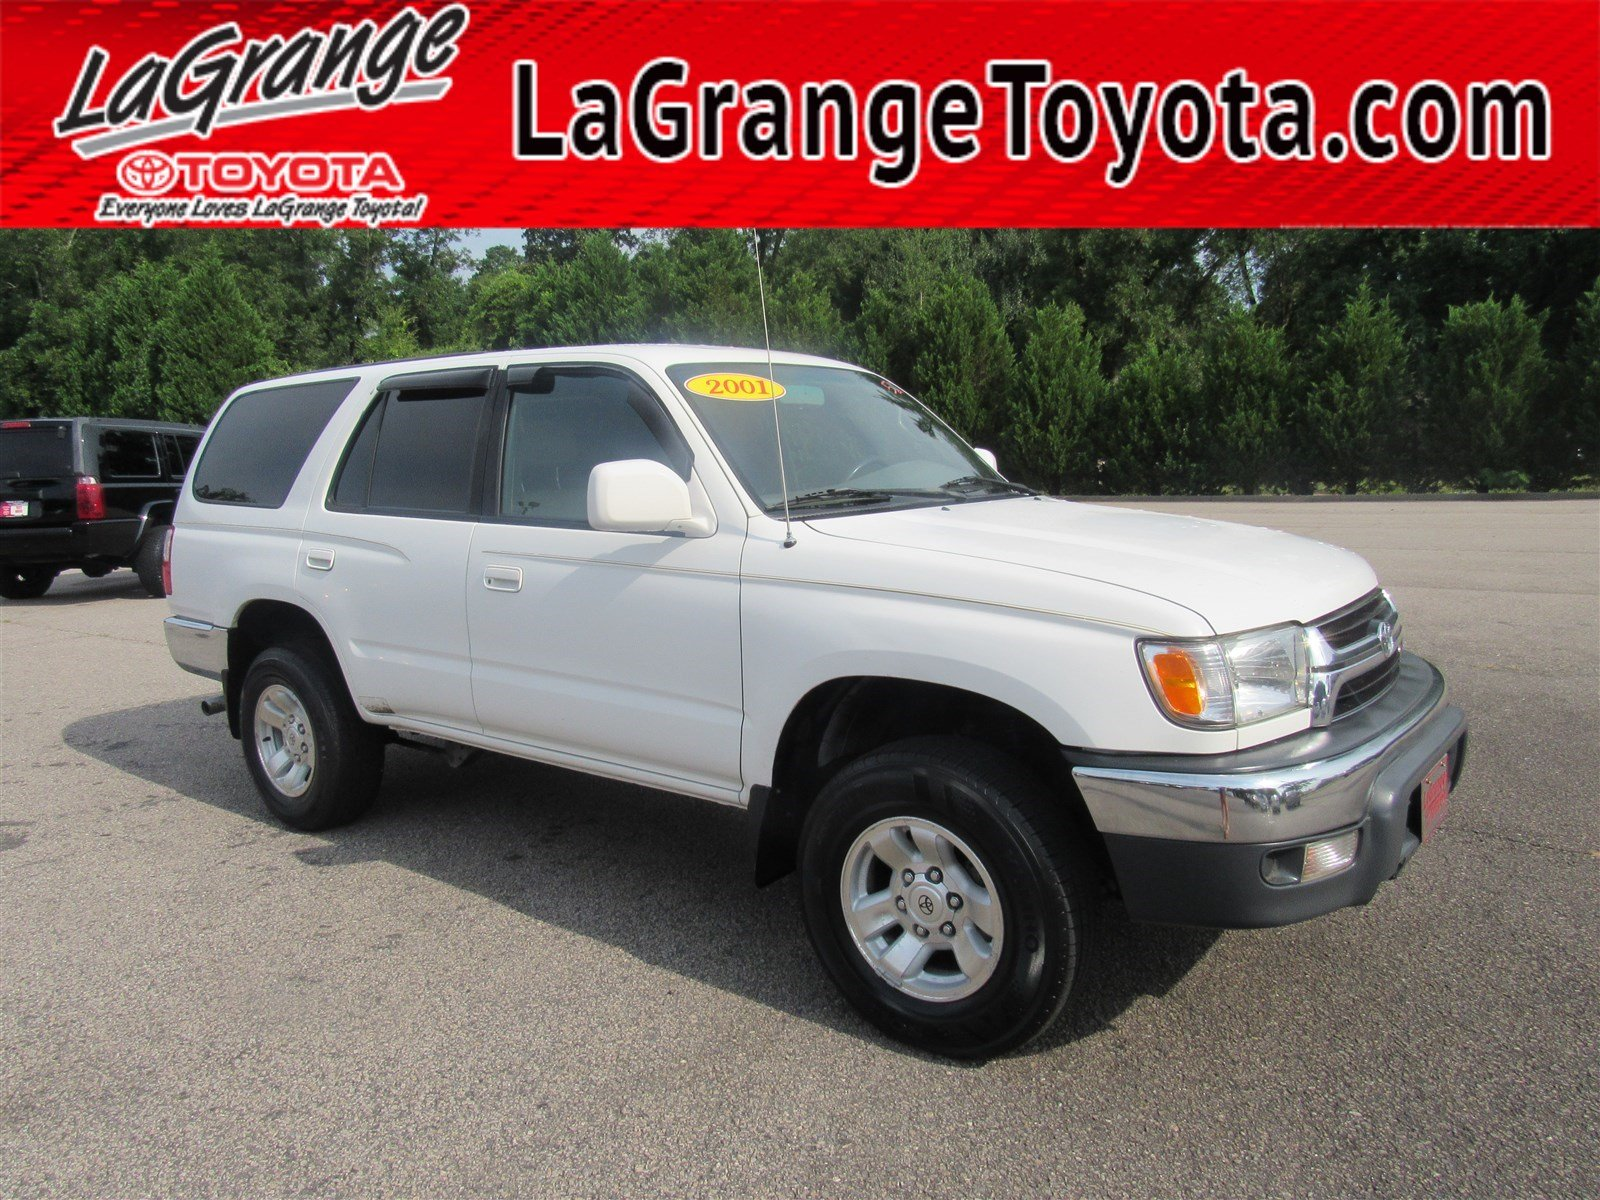 Marvelous Pre Owned 2001 Toyota 4Runner 4dr SR5 3.4L Auto